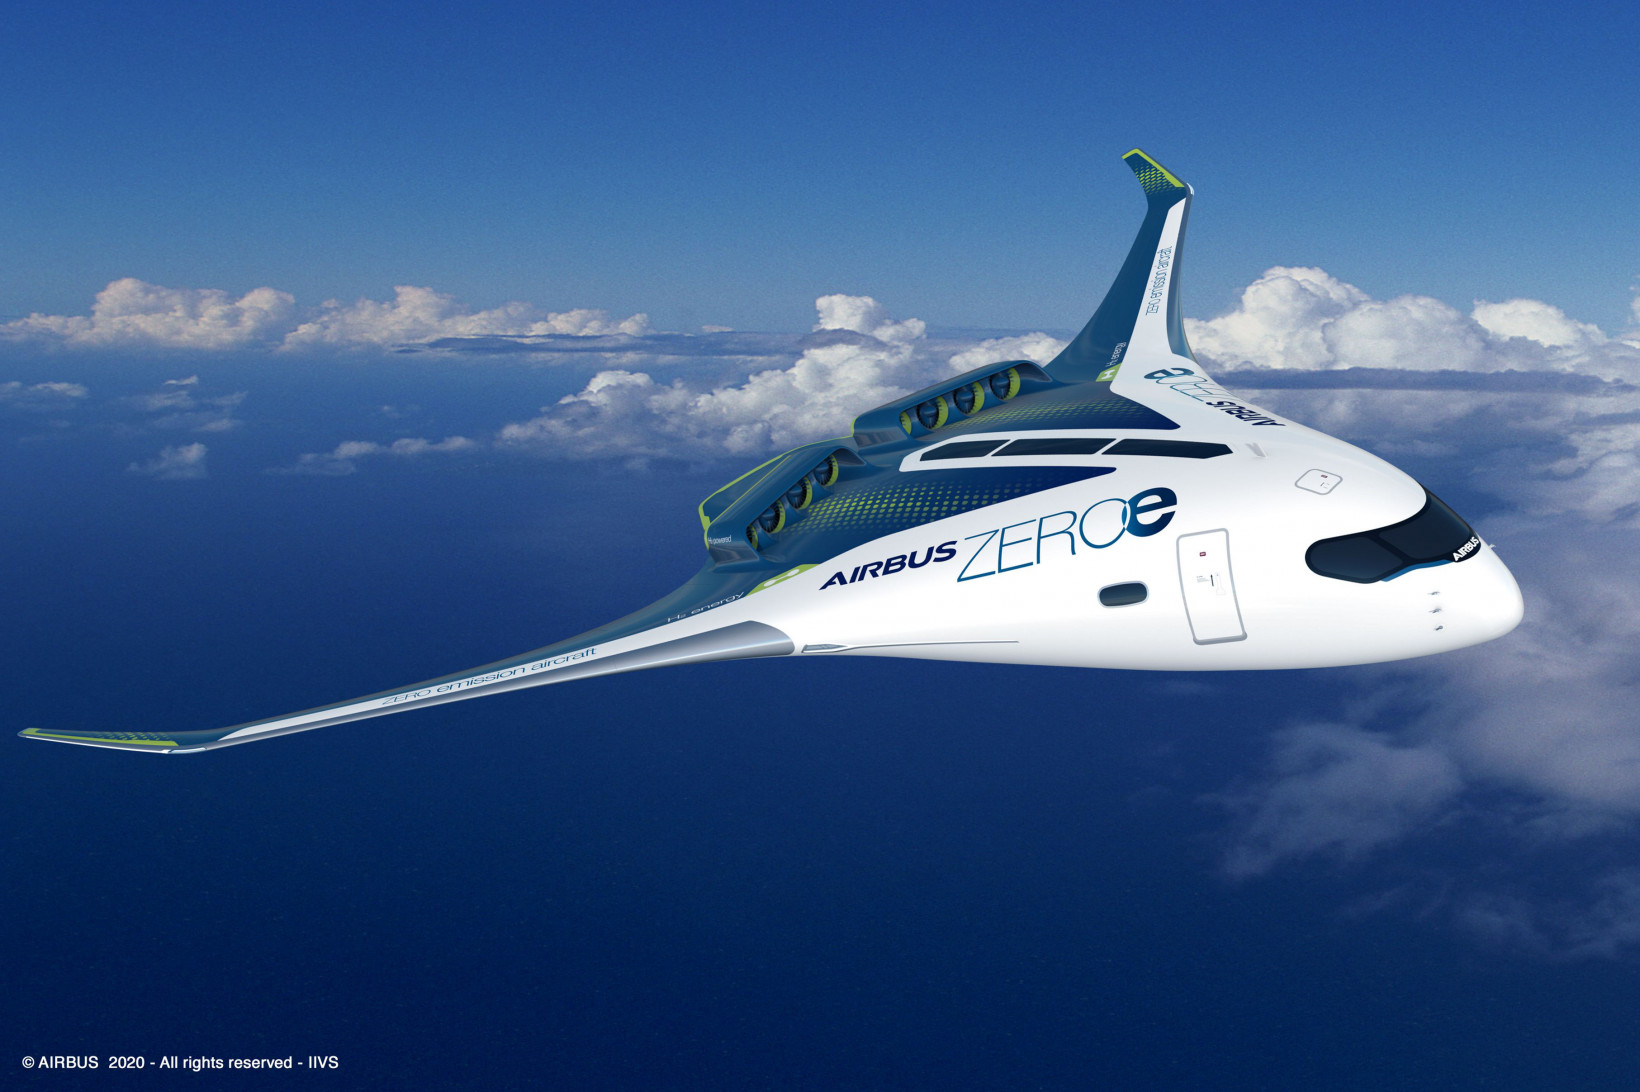 blended-wing, plane, future, airbus, travel, flight